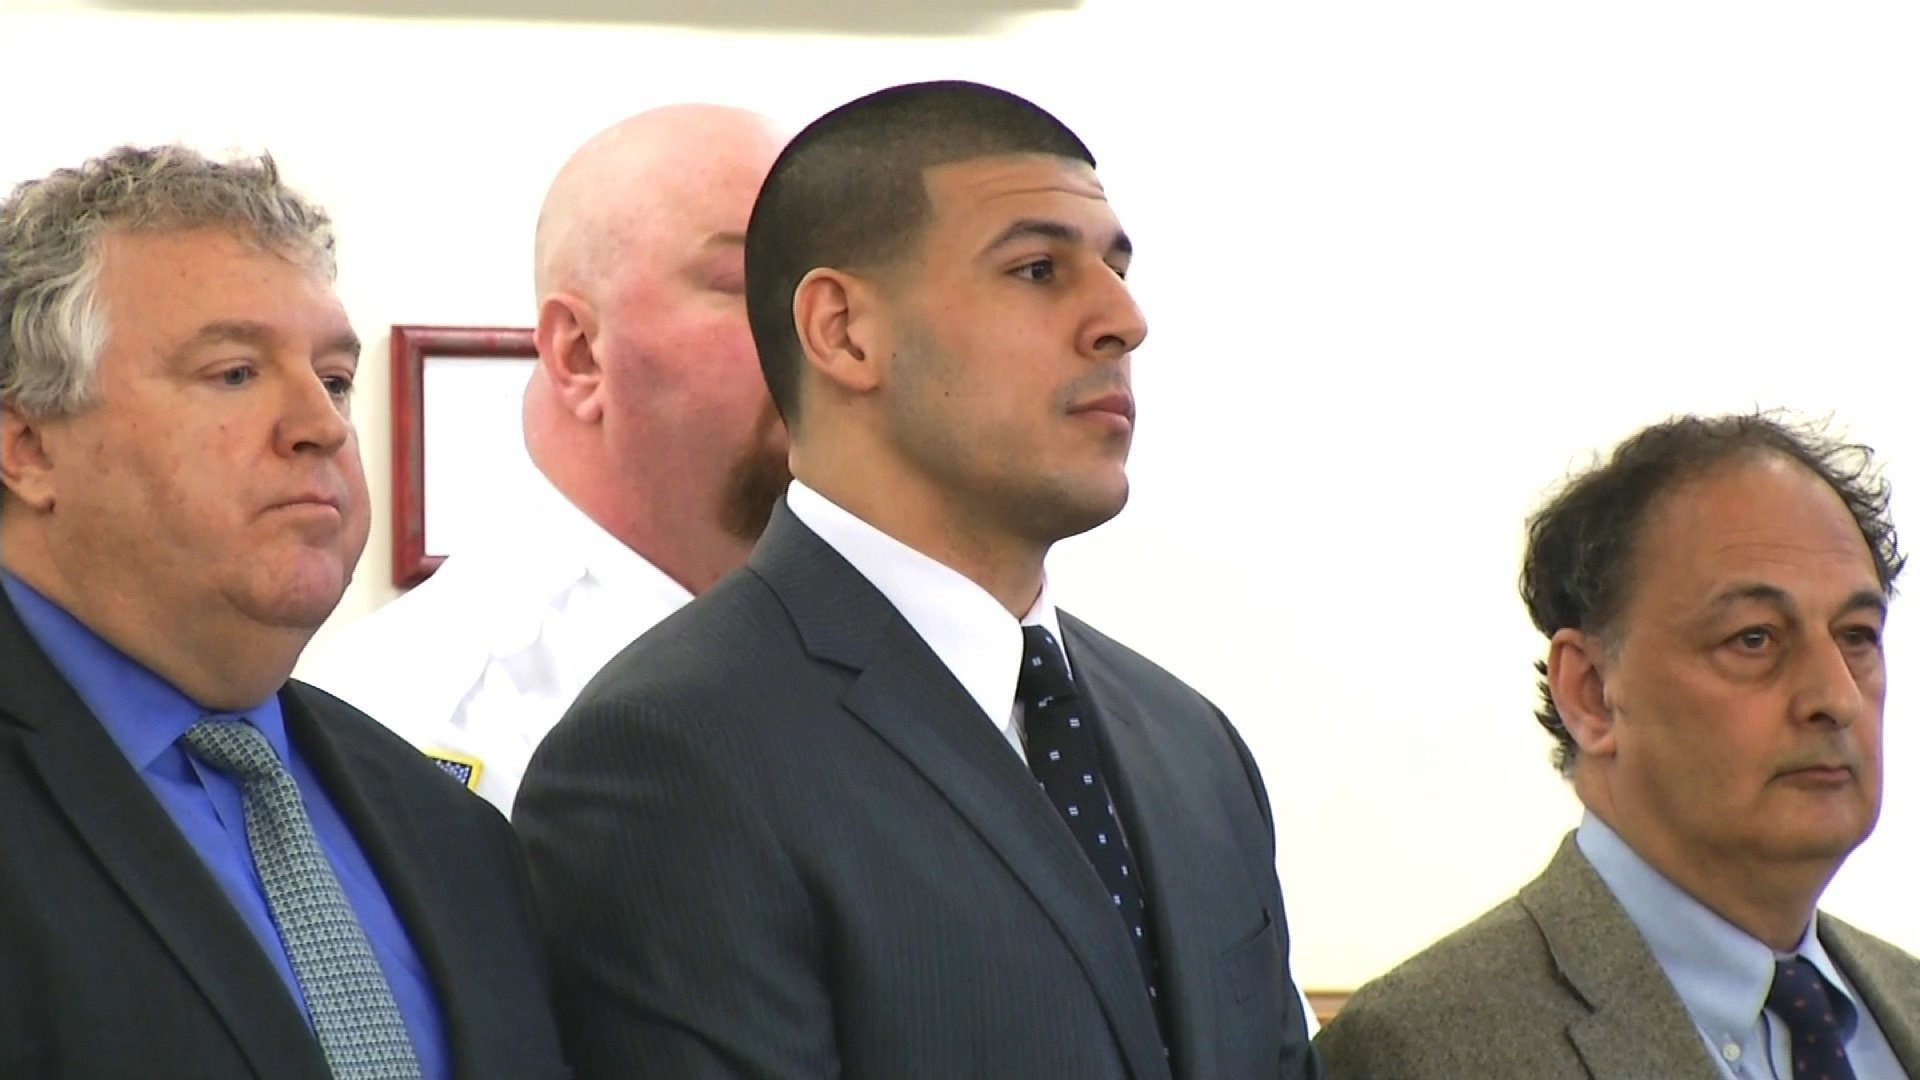 Aaron Hernandez: New Details Emerge in Former NFL Star's Death